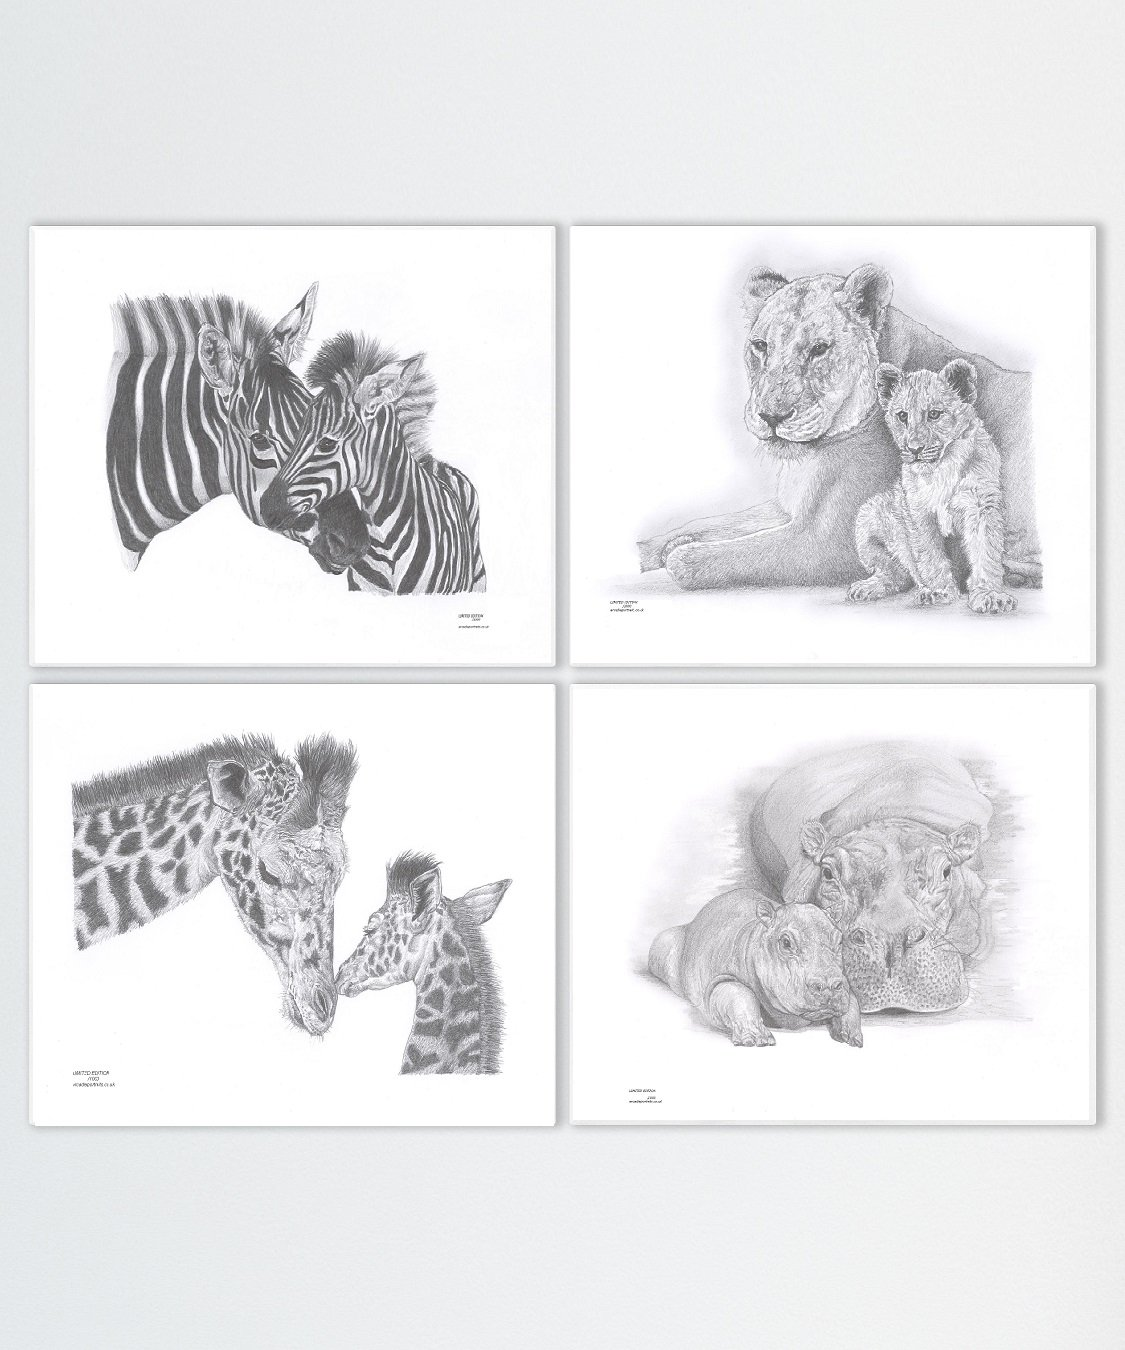 Nursery wild zoo farm jungle safari mother and baby animal set of 4 art pencil drawing art prints zebra mare foal lioness lion and cub giraffe and calf